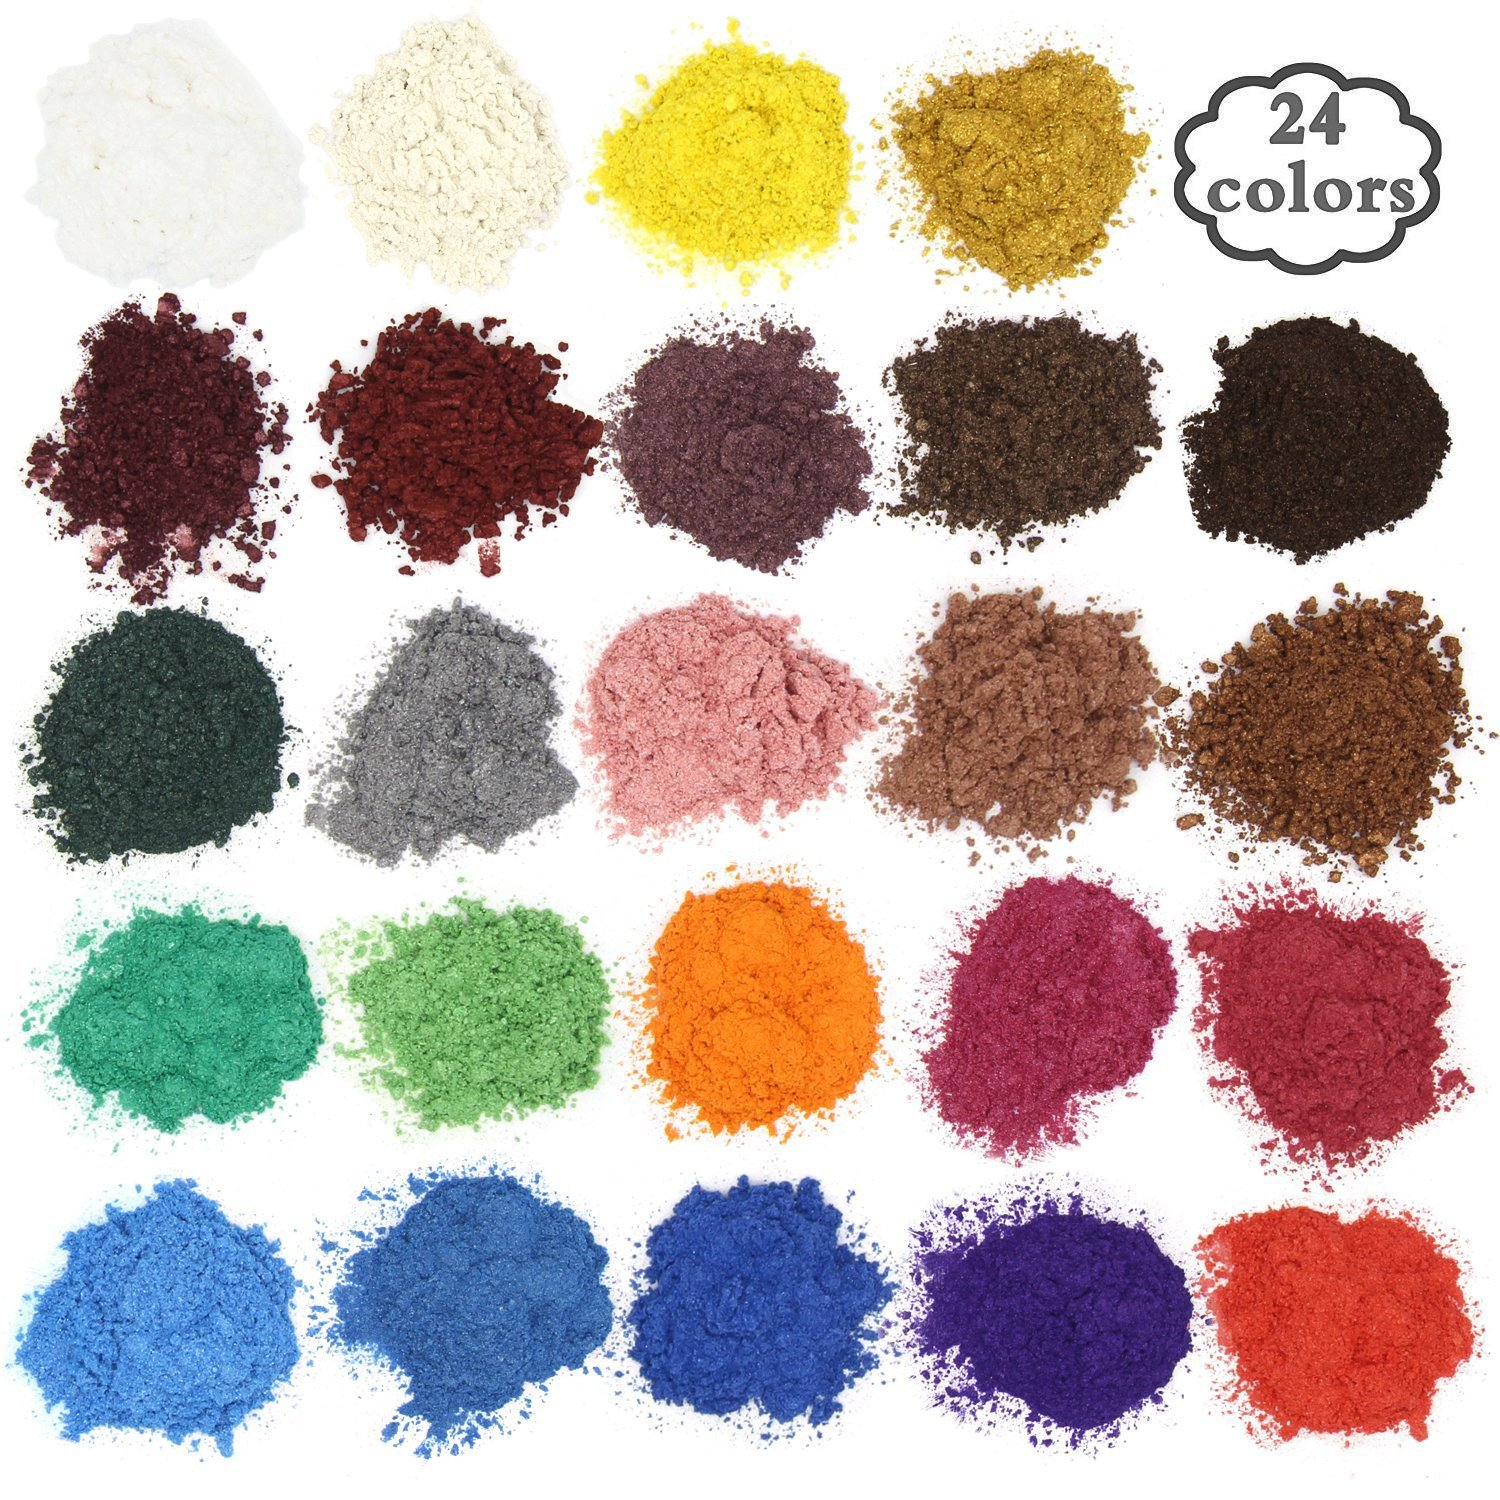 Soap dye - Mica powder - Pigment powder for bath bomb - Soap making colorant - 24 coloring - Resin dye, Eye shadow, Blush, Nail art, Resin jewelry, Artist, Craft projects